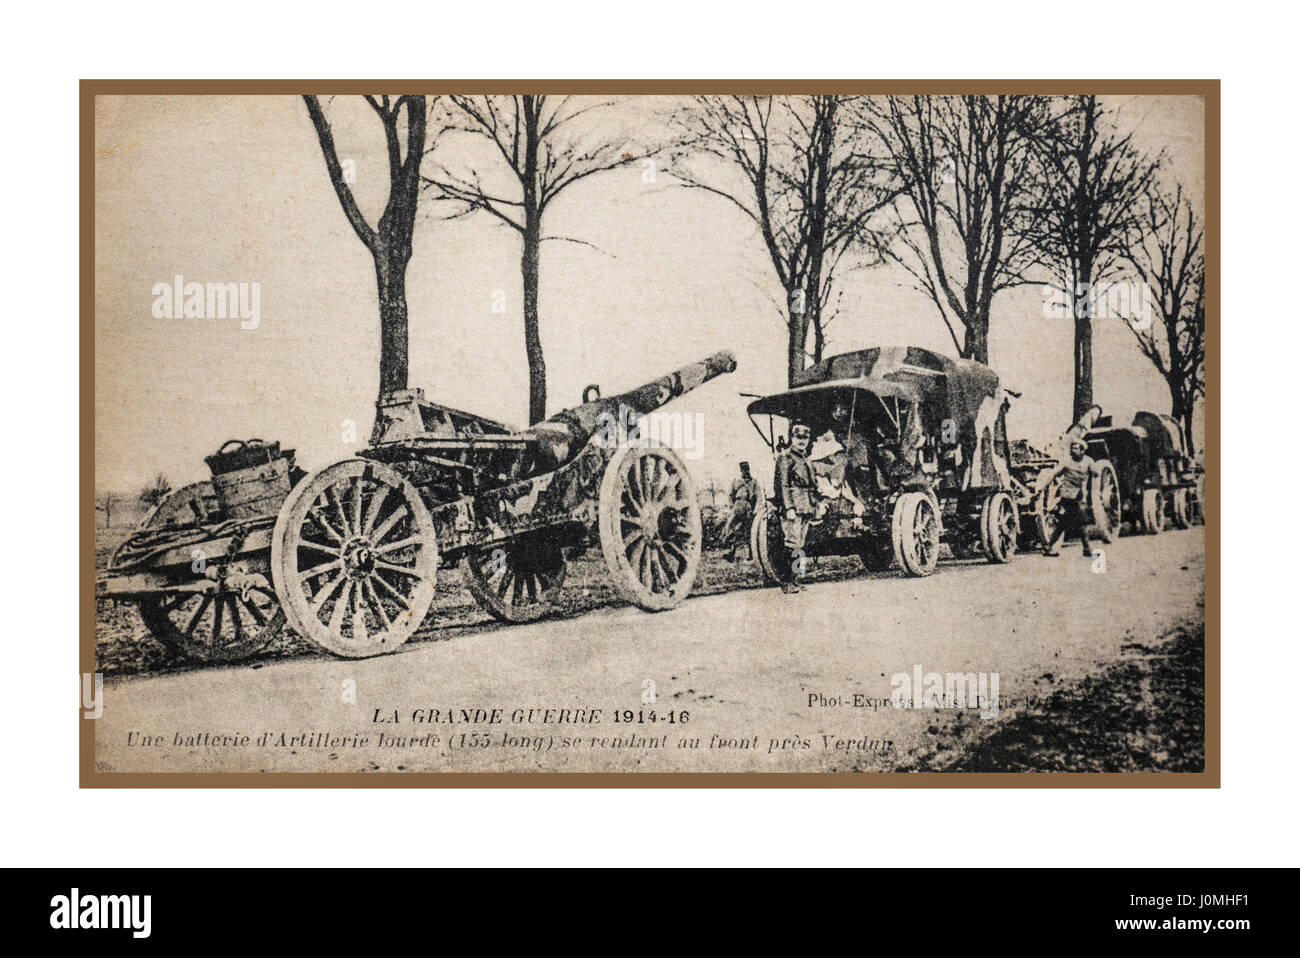 Verdun France supply line of guns and ammunition Poignant vintage historic WW1 1914 postcard, sent from the battle - Stock Image